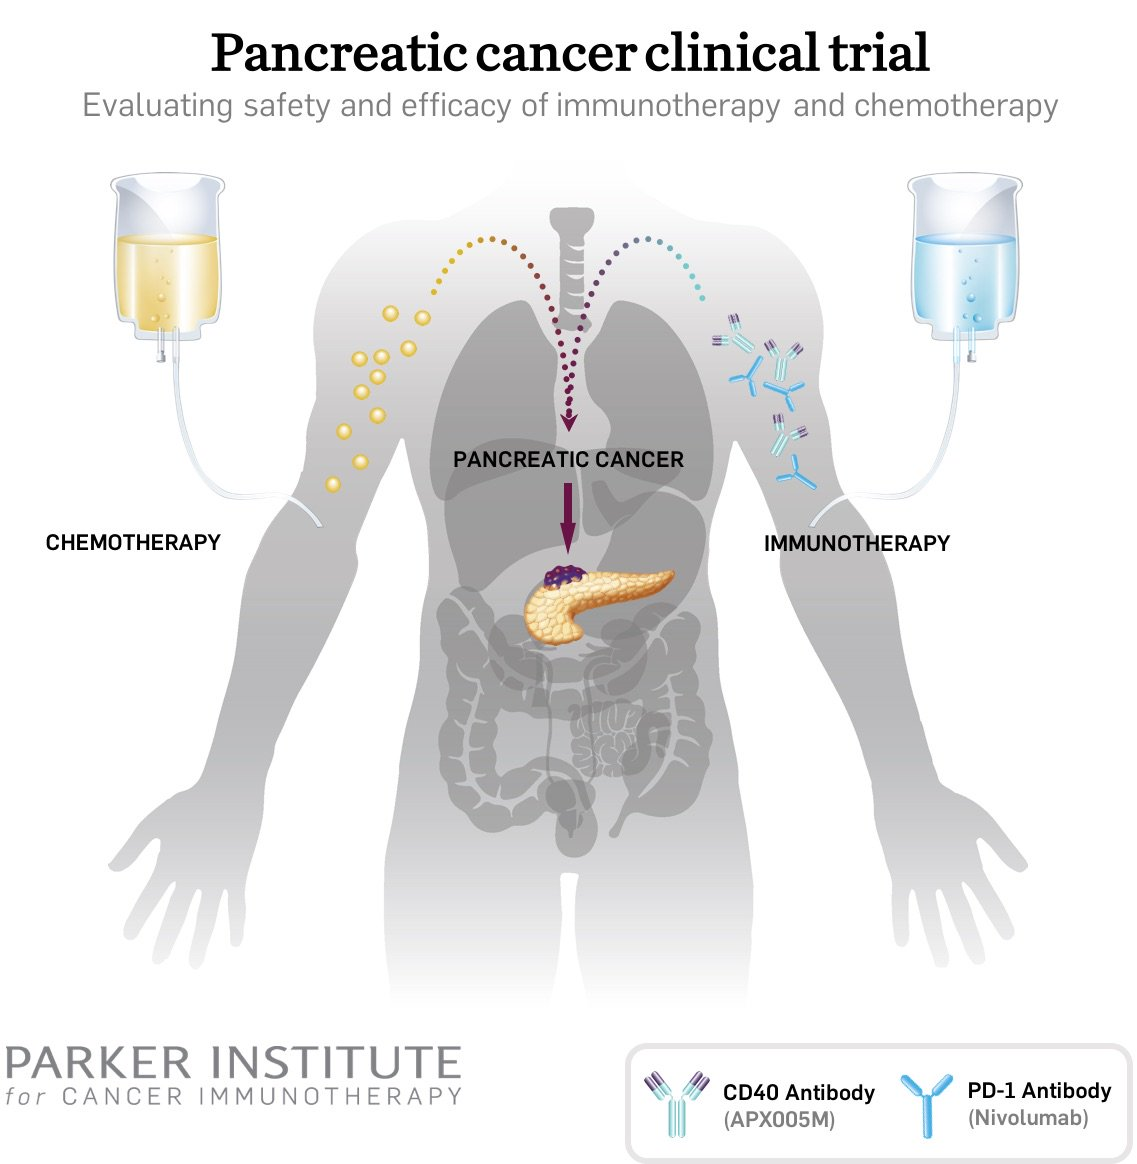 test Twitter Media - @parkerici is taking on one of the toughest cancers https://t.co/ZIXQ58Ekxz #PancreaticCancer Hear more on #cancer #immunotherapy at #PMWC18 https://t.co/RuswE2d8am